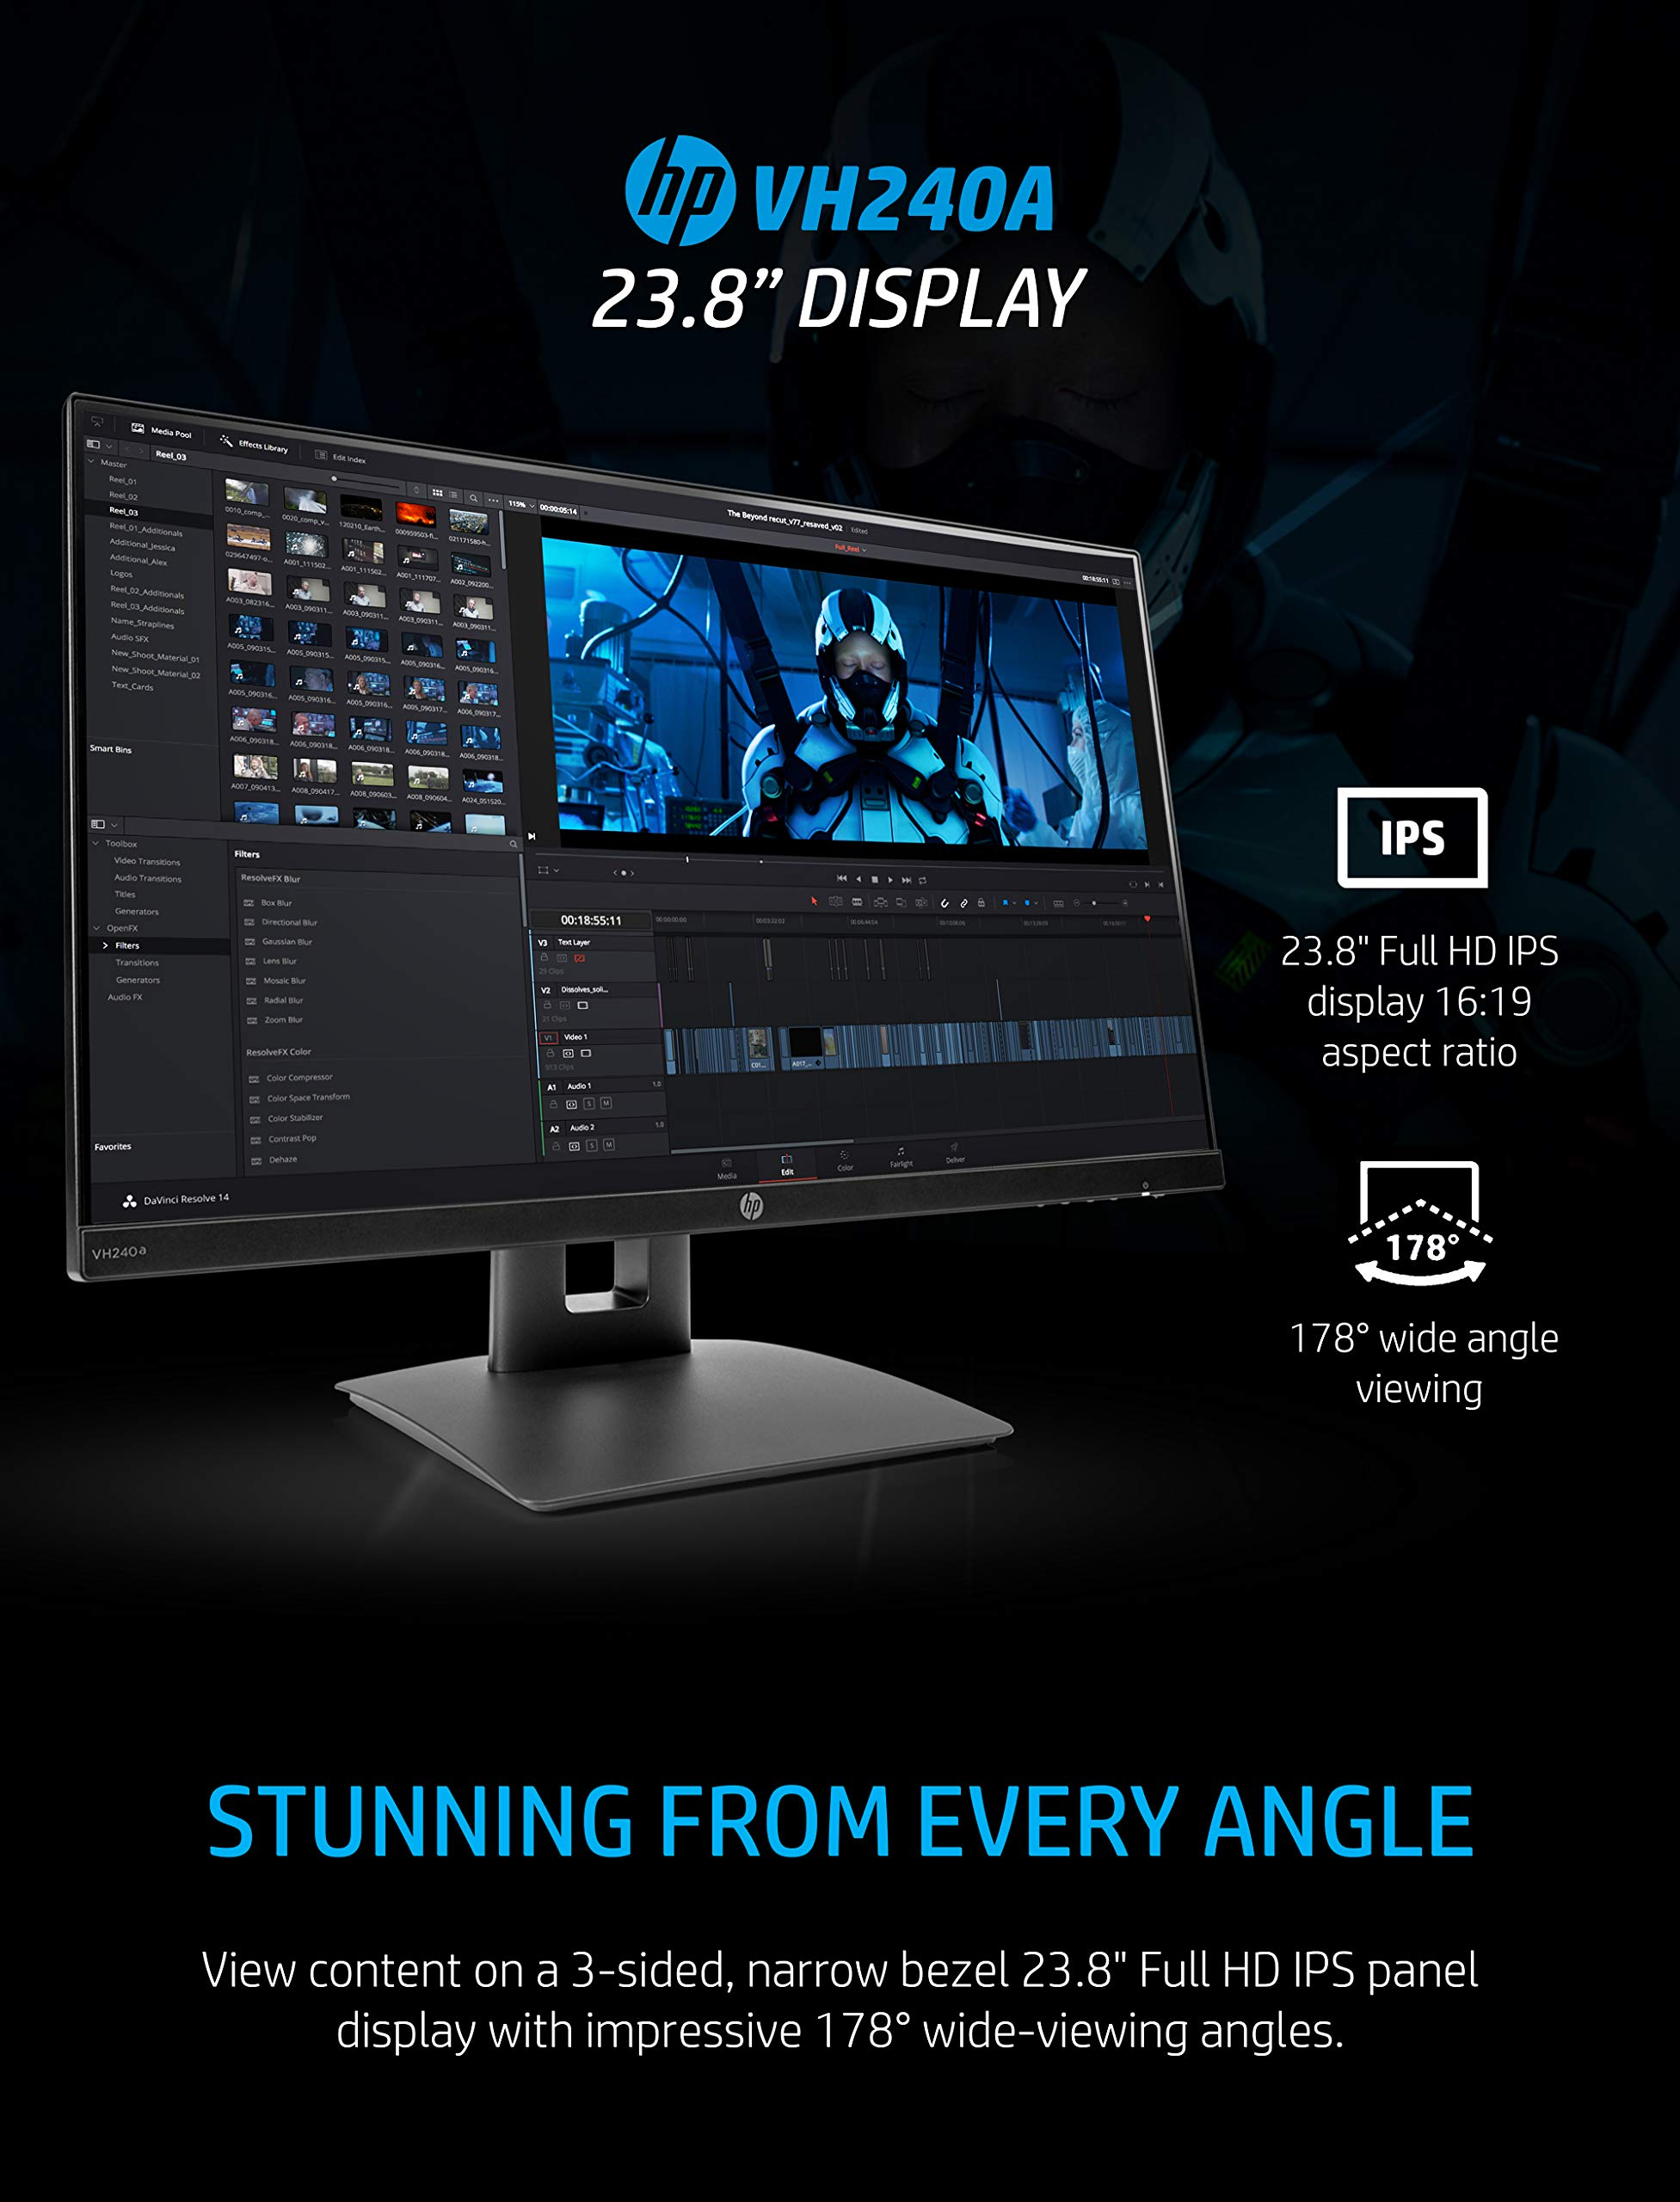 HP VH240a 23.8-Inch Full HD 1080p IPS LED Monitor with Built-In Speakers and VESA Mounting, Rotating Portrait & Landscape, Tilt, and HDMI & VGA Ports (1KL30AA) - Black